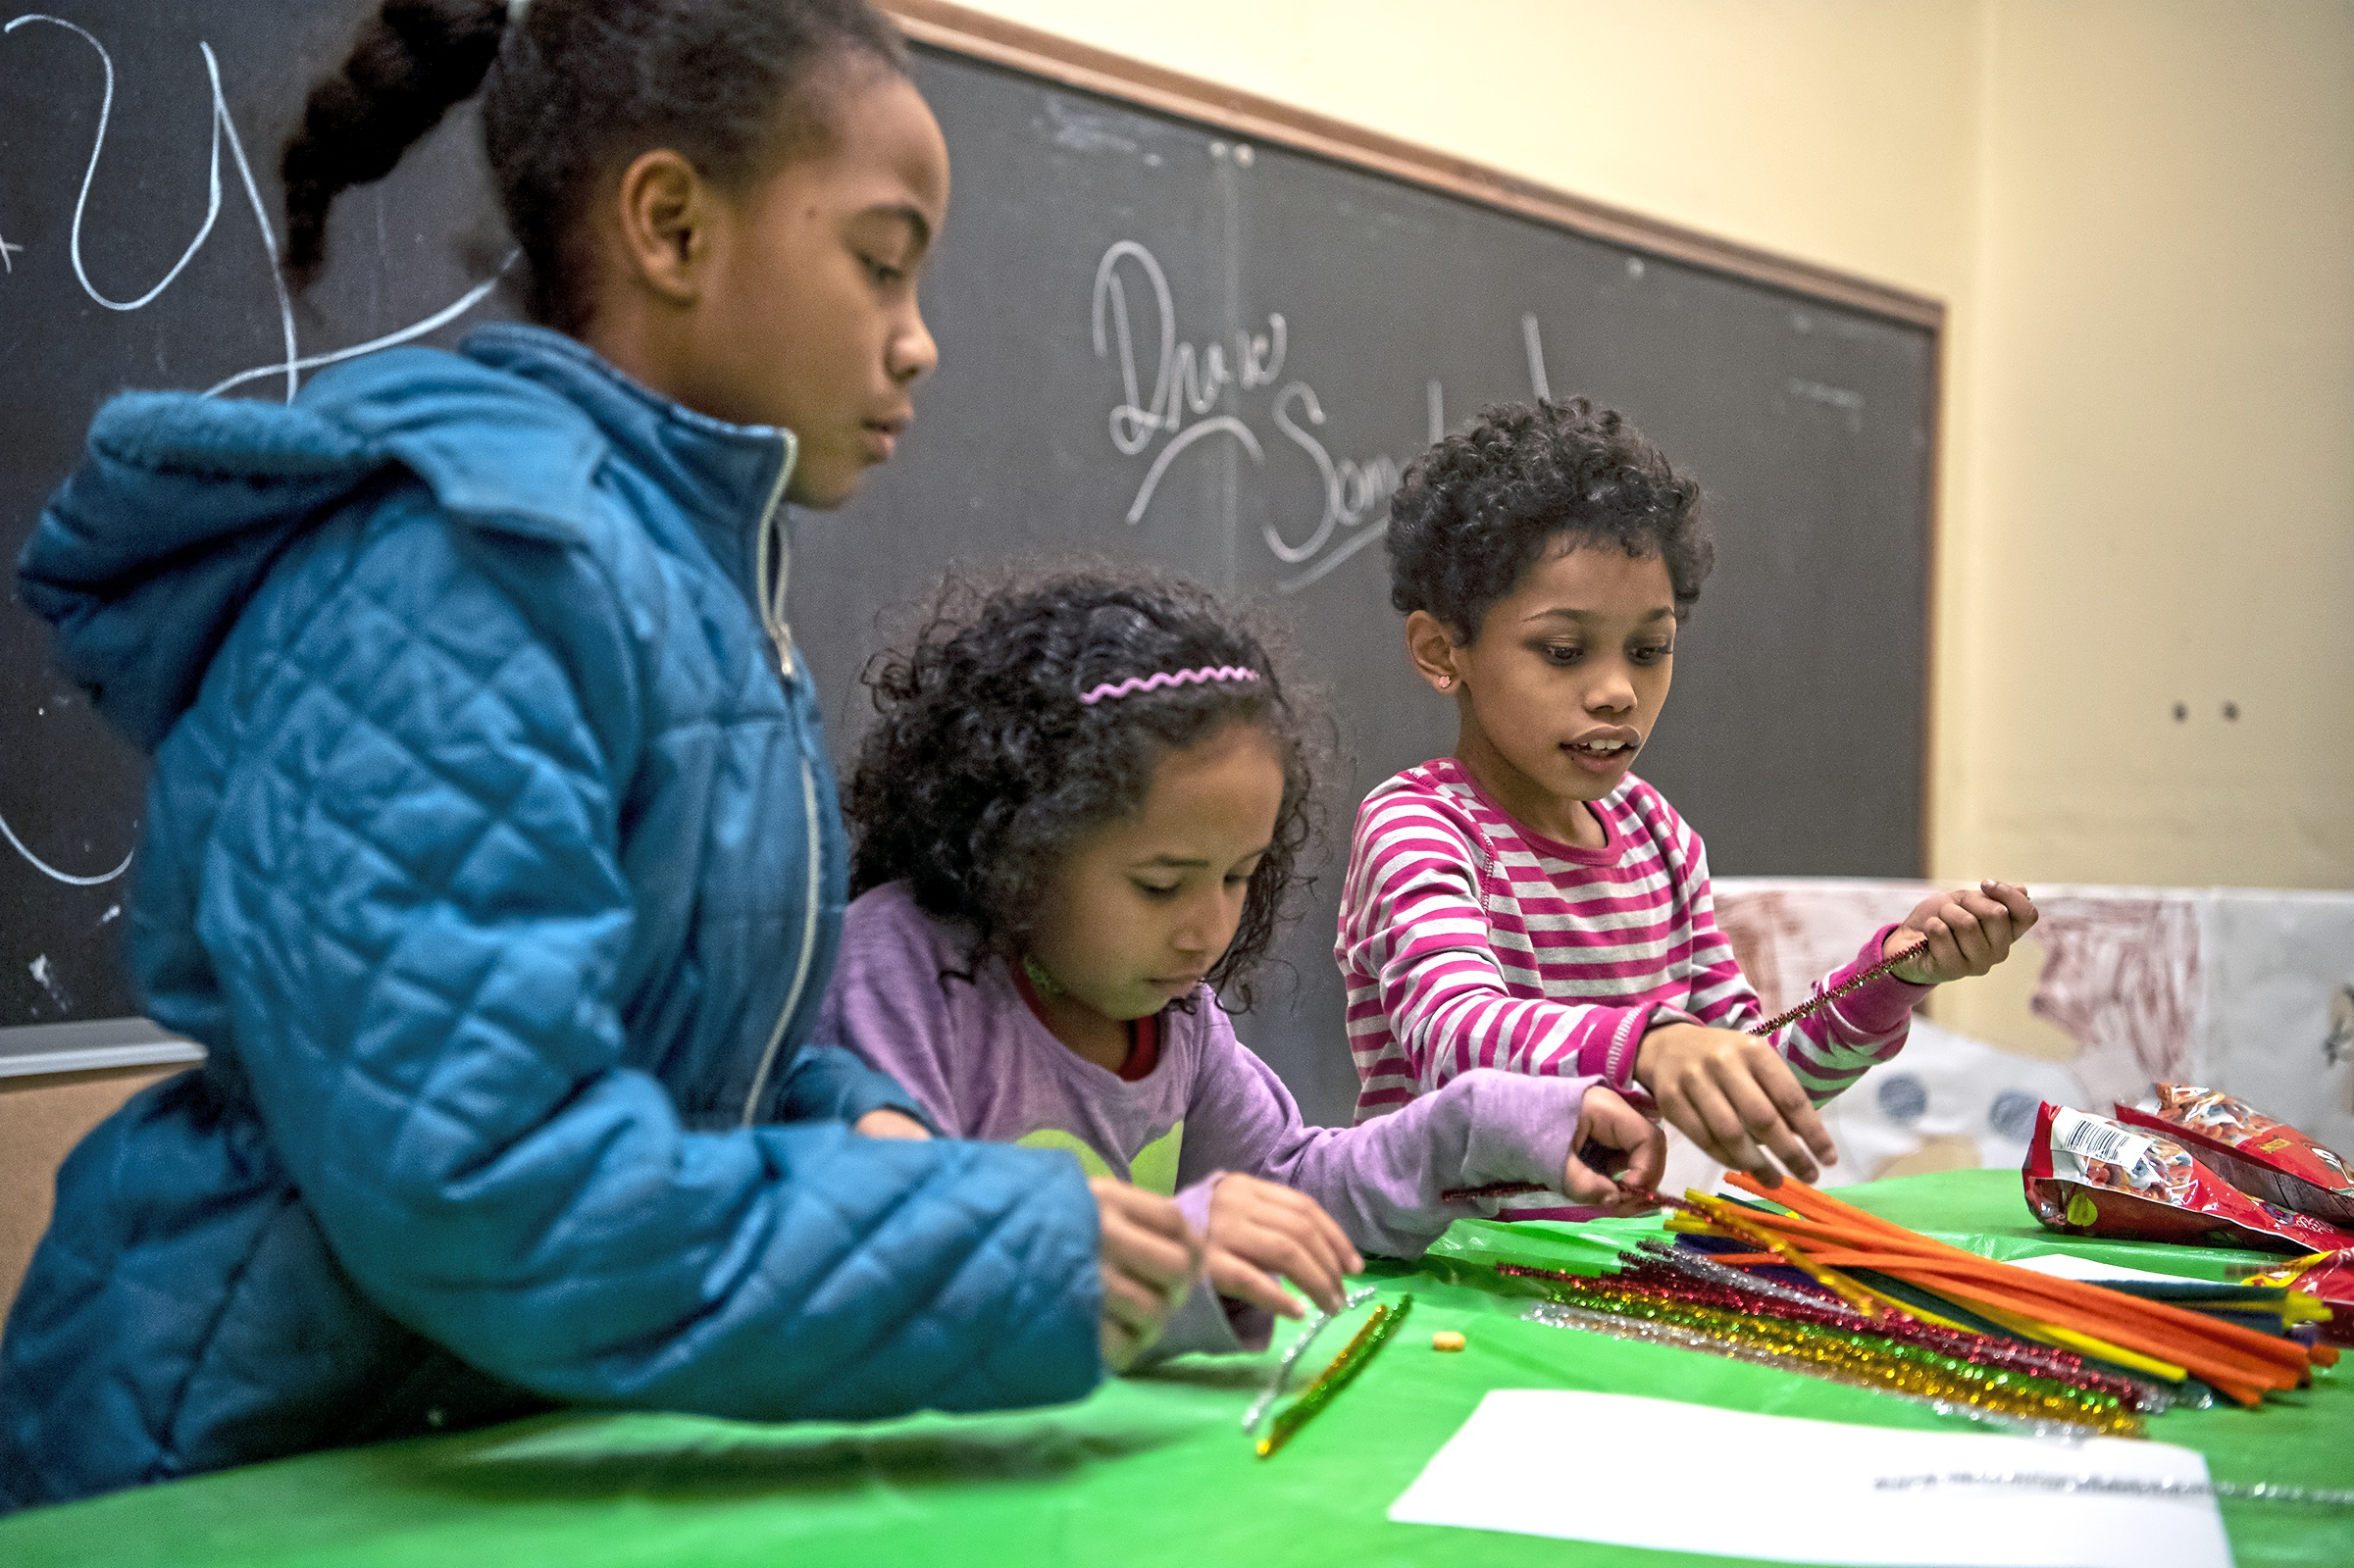 From left, Amy Abraham, 9, Mary Muyango, 7, and Maya Muyango, 8, all of Perry North, play in a room in the old McNaugher school during a holiday party for the Fineview and Perry Hilltop Citizen Councils, Thursday, Dec. 13, 2018, in Perry North. (Alexandra Wimley/Post-Gazette)